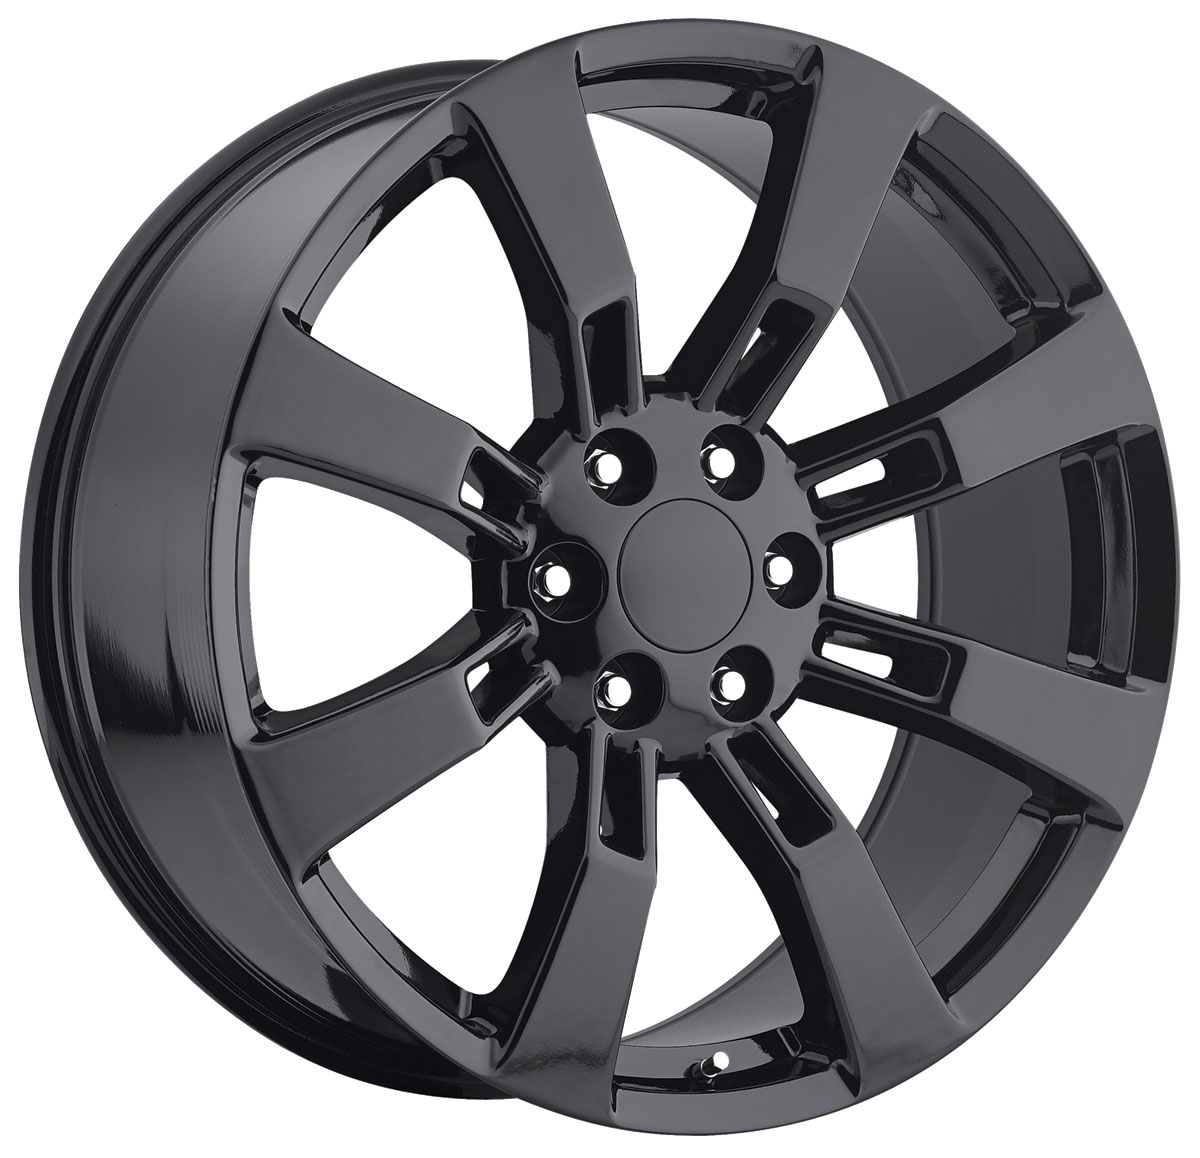 Wheel, Factory Reproduction, Escalade, SRS 40, 26X10 6X5.5 +31 HB 78.1